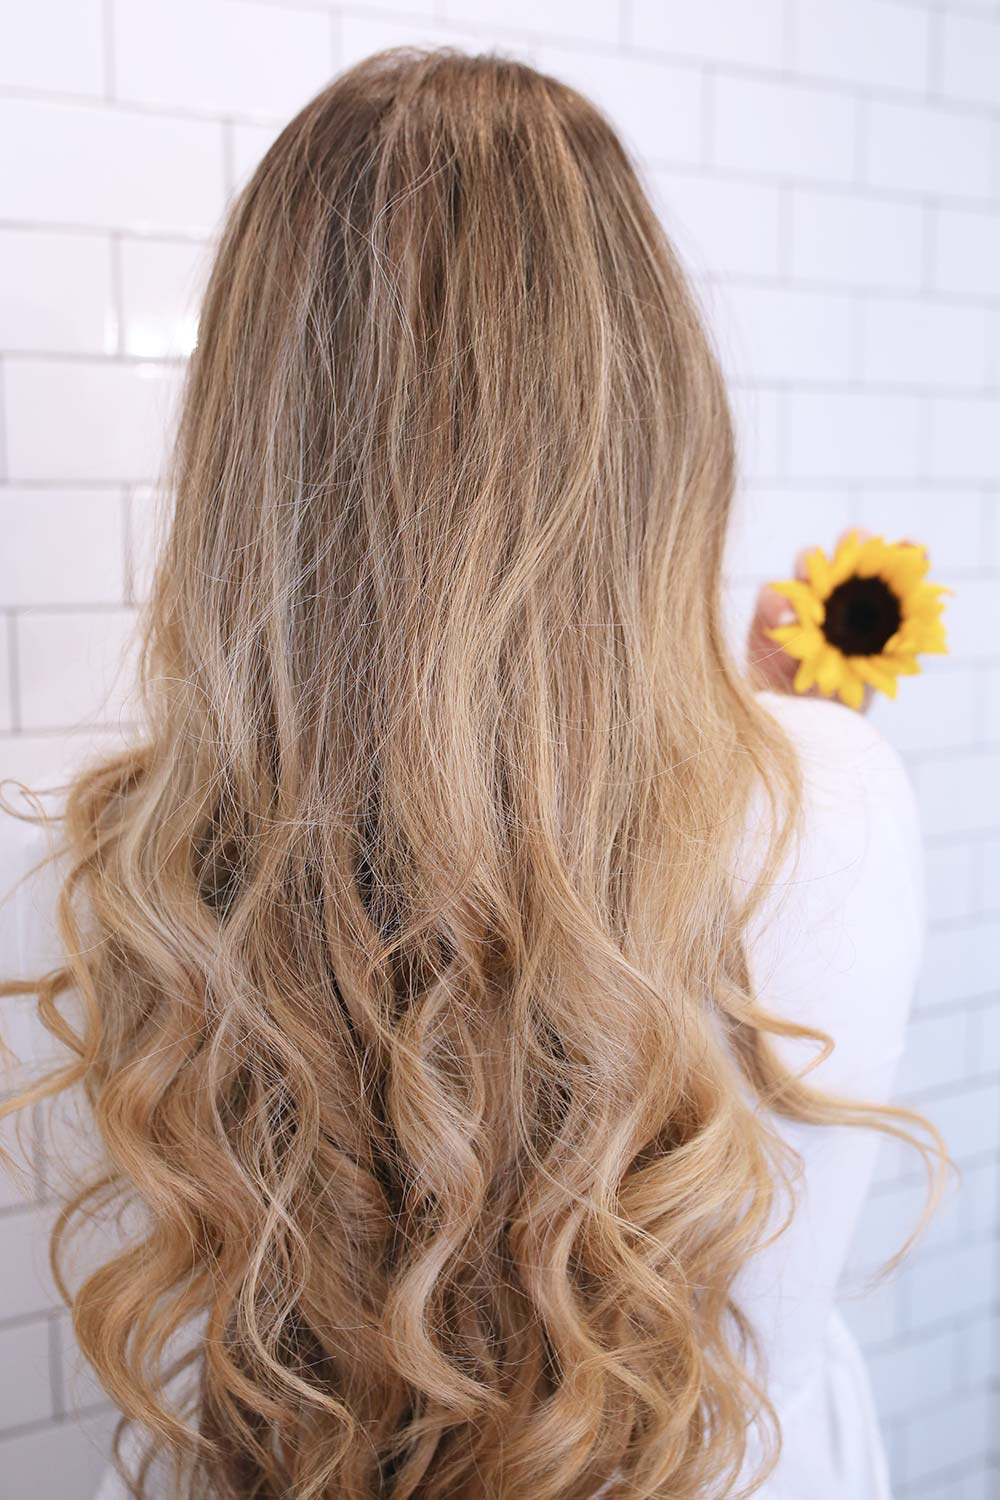 Shampoo and conditioner for dry hair--Hair Food Moisture Shampoo and Conditioner